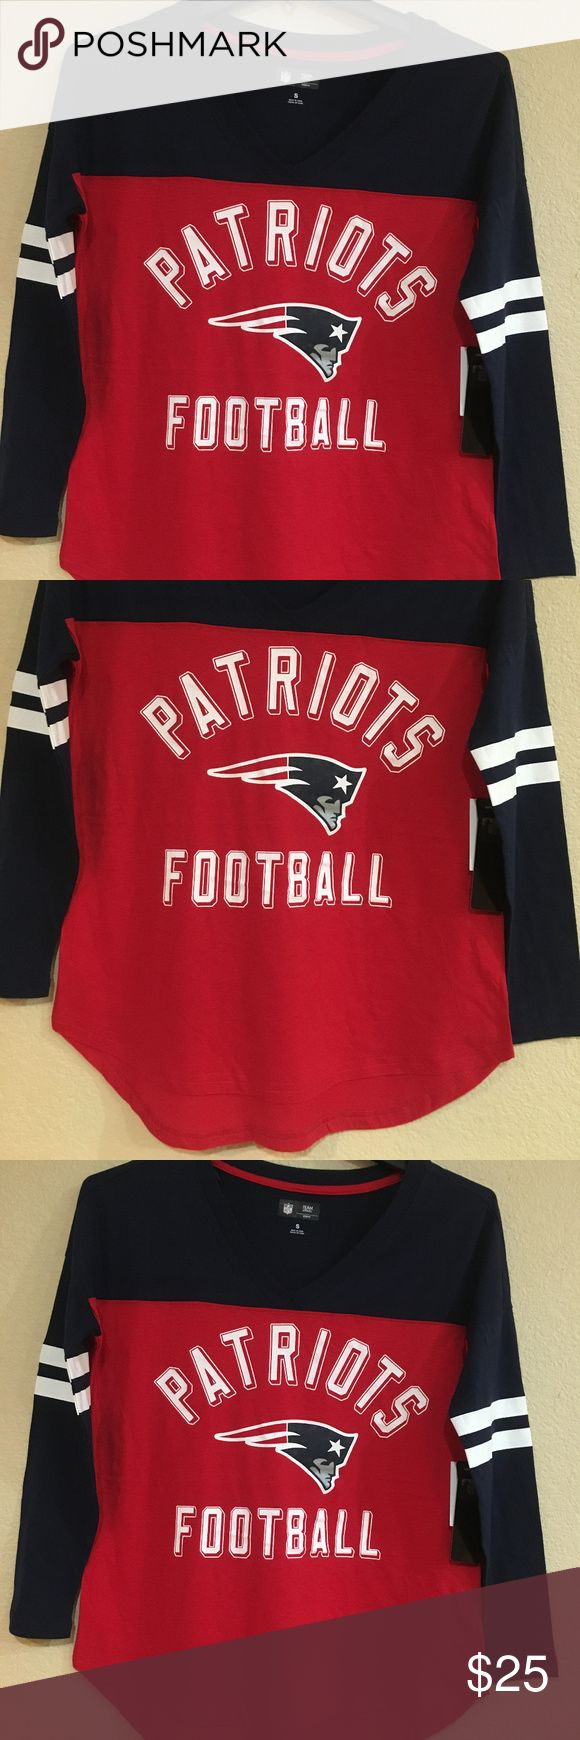 New England Patriots Women V-Neck Long Sleeve Tee New England Patriots Women's V-Neck Long Sleeve T-Shirt by G-III - Goal Line LS Tee - NFL Licensed      Material: 60% Cotton, 40% Polyester     Patriots Women's V-Neck Long Sleeve Tee     Blue color sleeves/yoke/neckline, Red color body     Soft hand screenprint full color team logo/graphic on front chest     White soft hand ink sleeve stripes     Brand: G-III     NFL Licensed     Size available: S - 2XL G-III Tops Tees - Long Sleeve